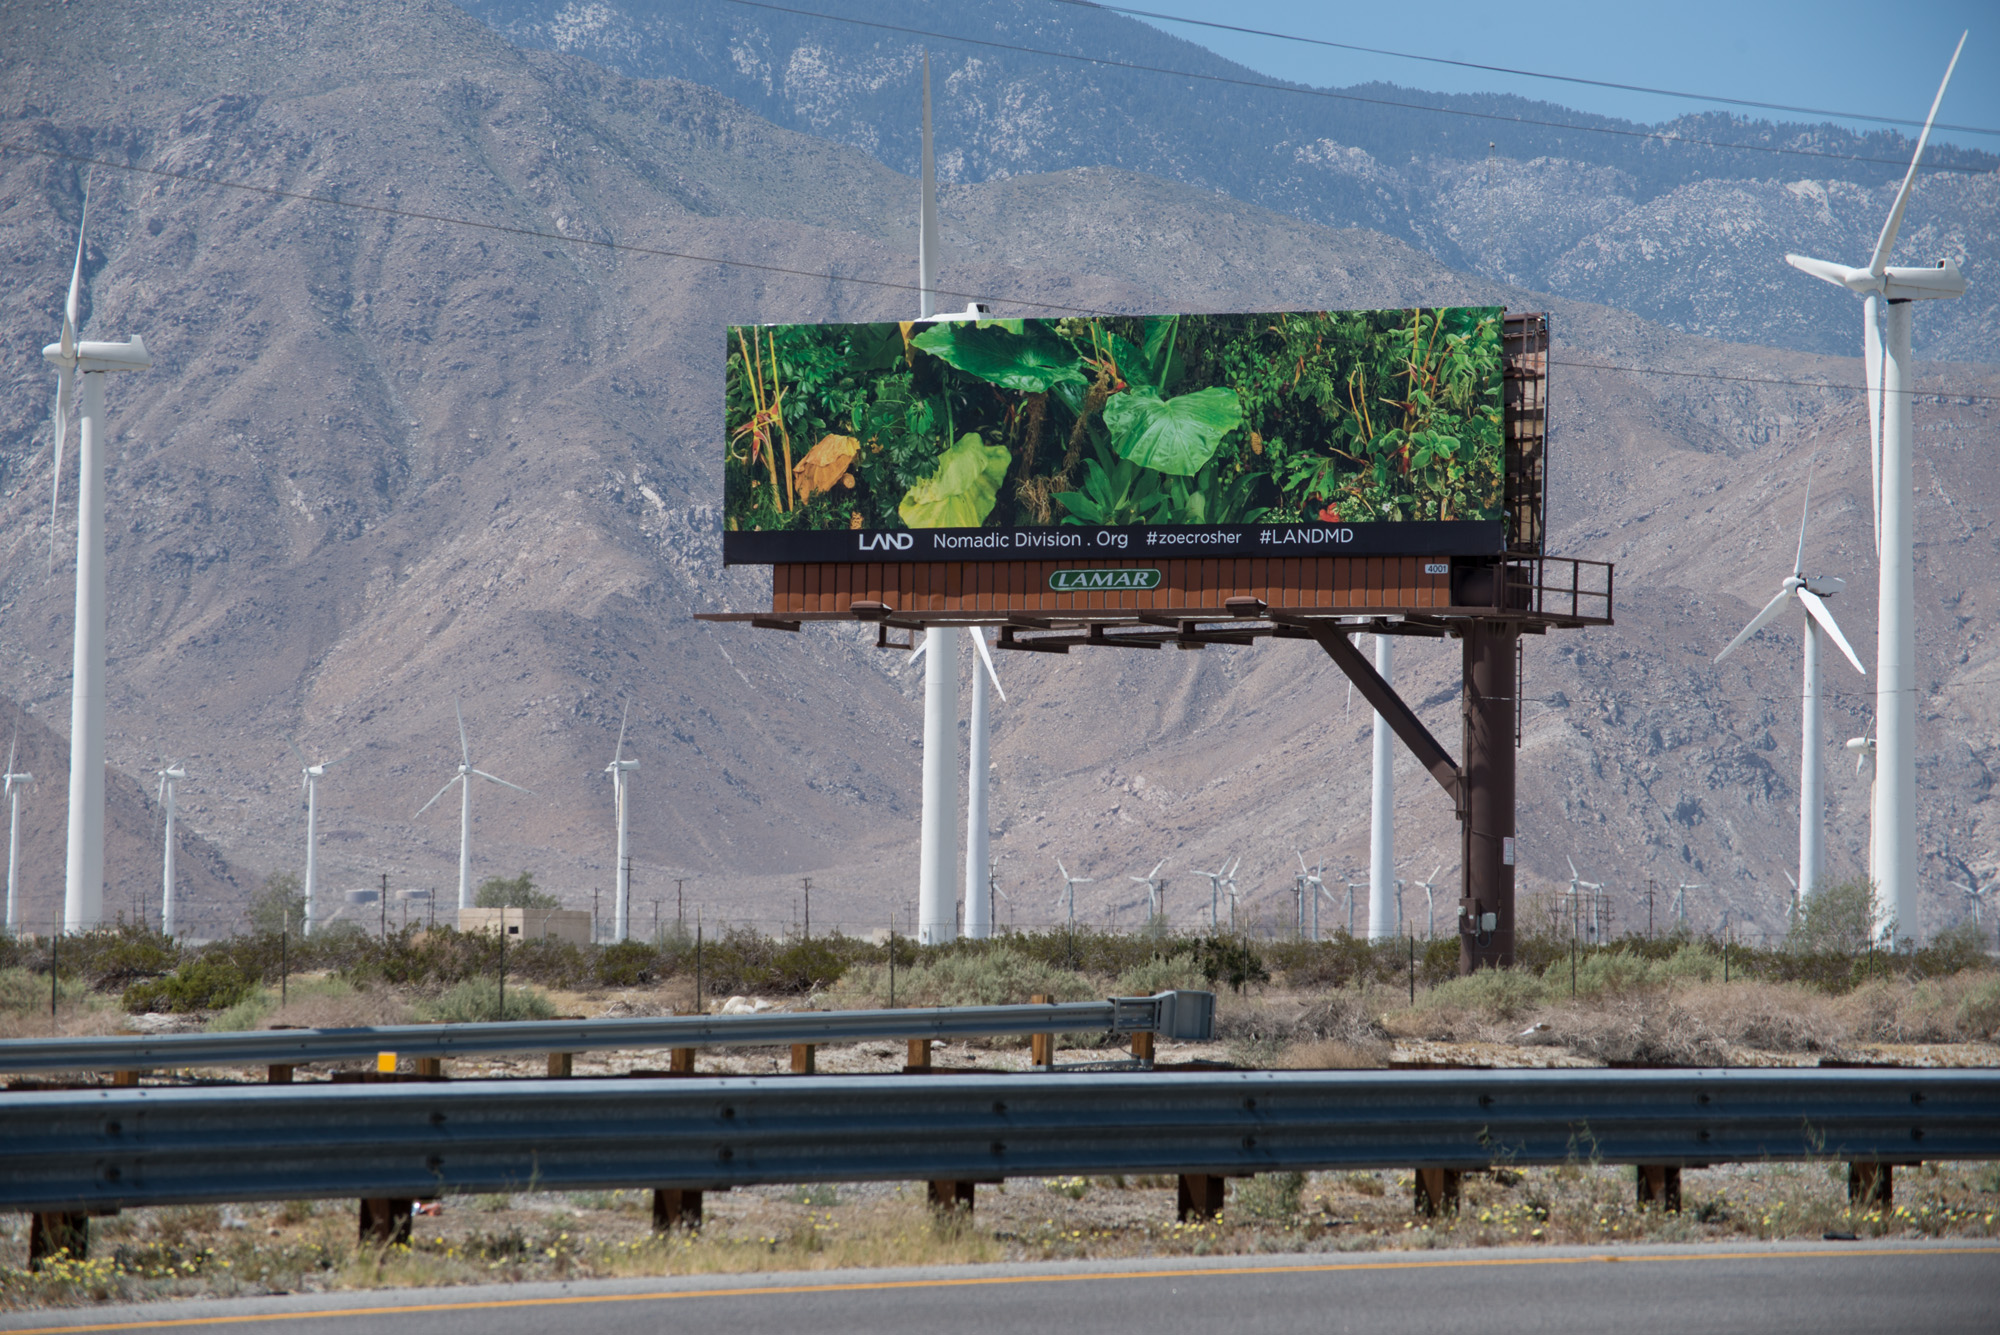 Zoe Crosher, The Manifest Destiny Billboard Project in Conjuction with LAND, Fourth Billboard to Be Seen Along Route 10, Heading West... (Where Highway 86 Intersects...), 2015 Courtesy: the artist.